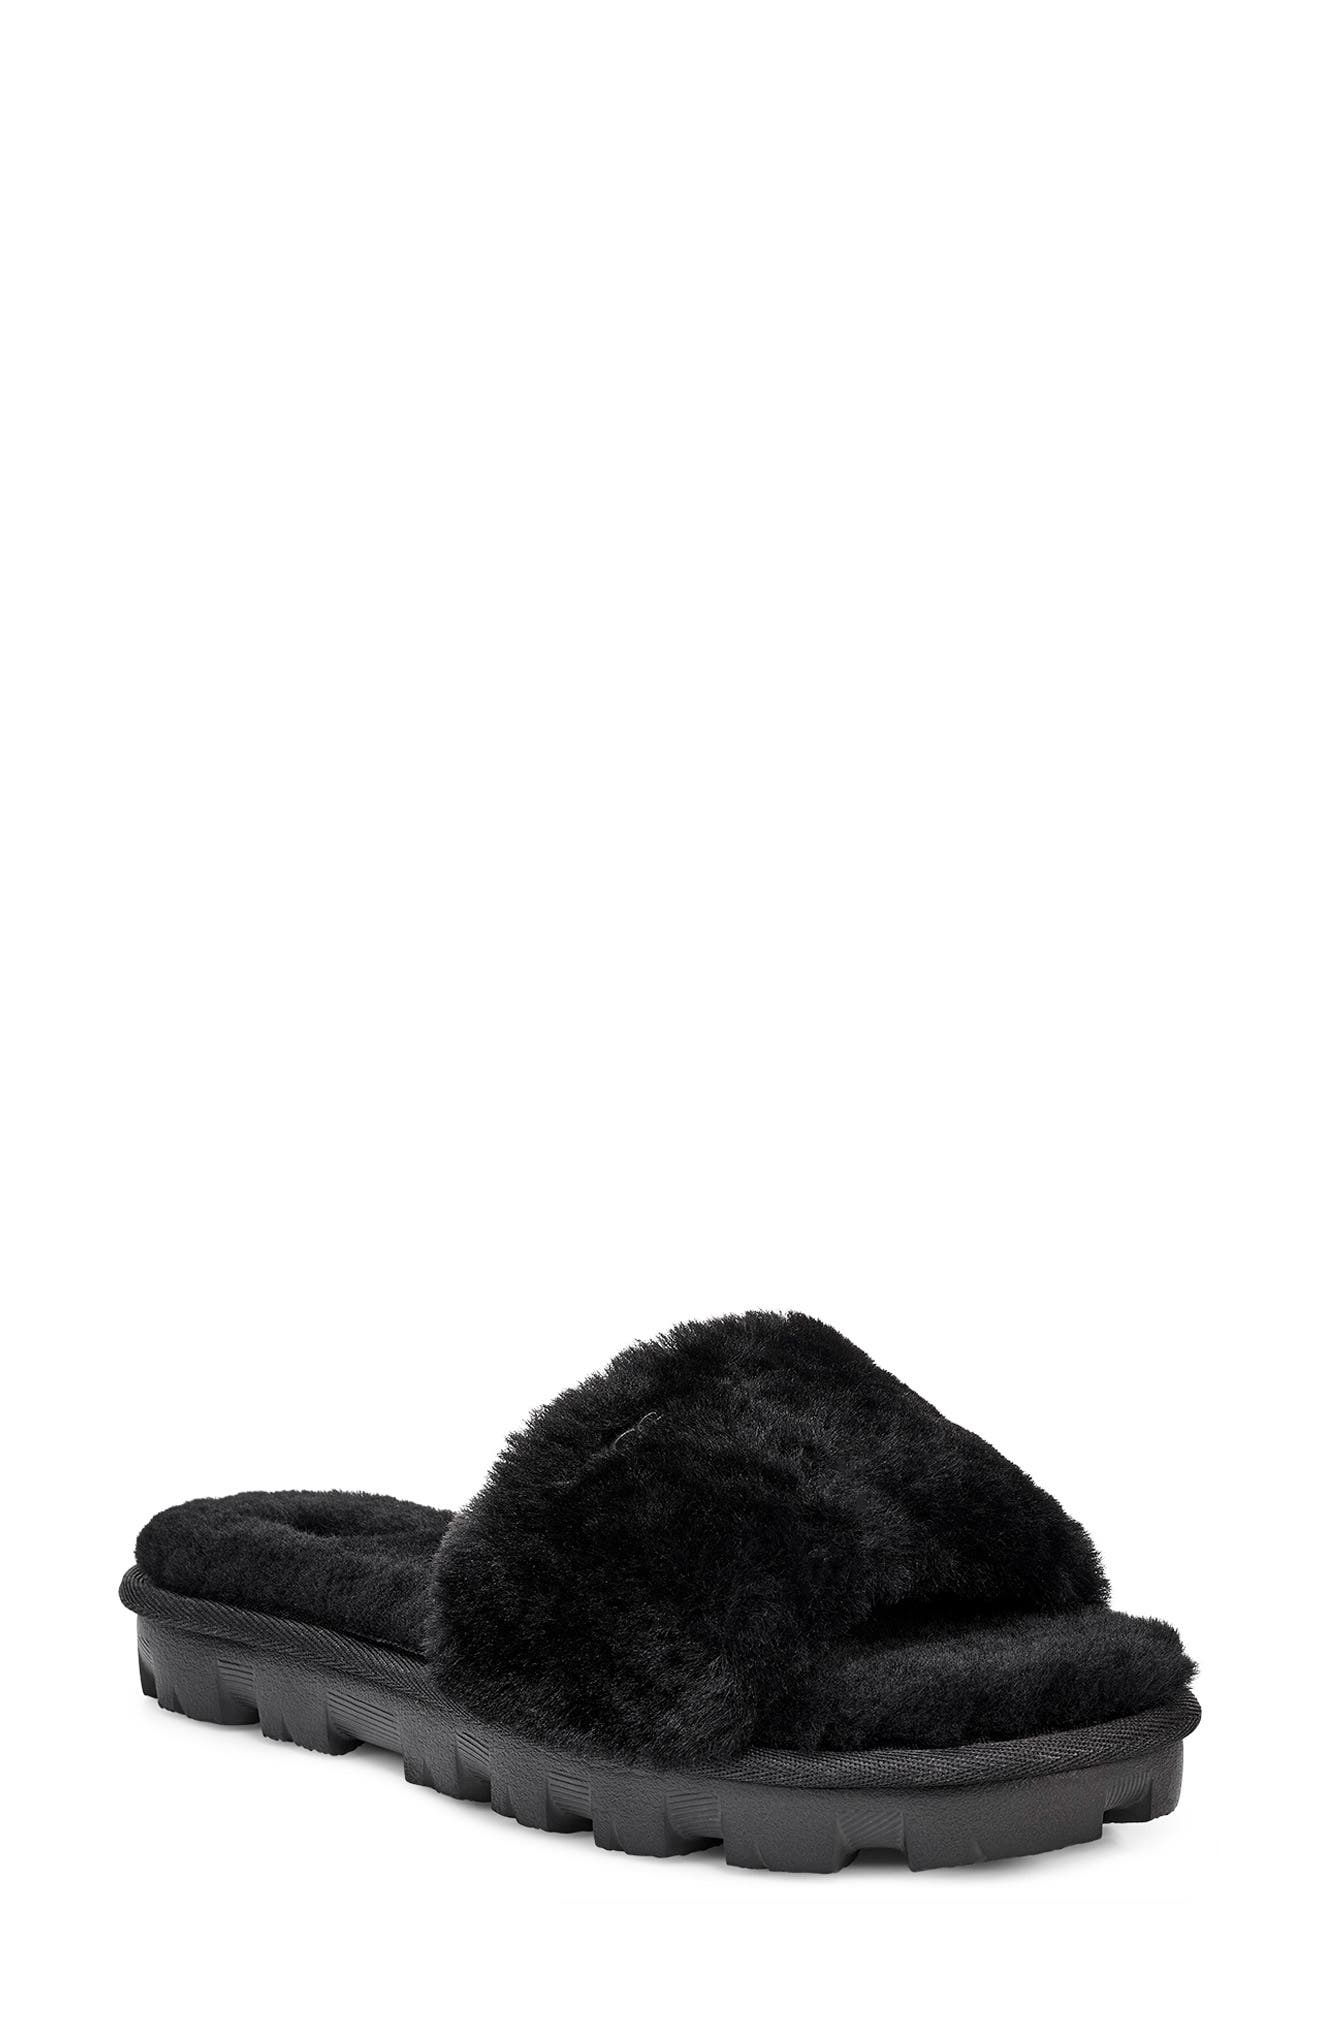 UGG<SUP>®</SUP>, Cozette Genuine Shearling Slipper, Main thumbnail 1, color, BLACK